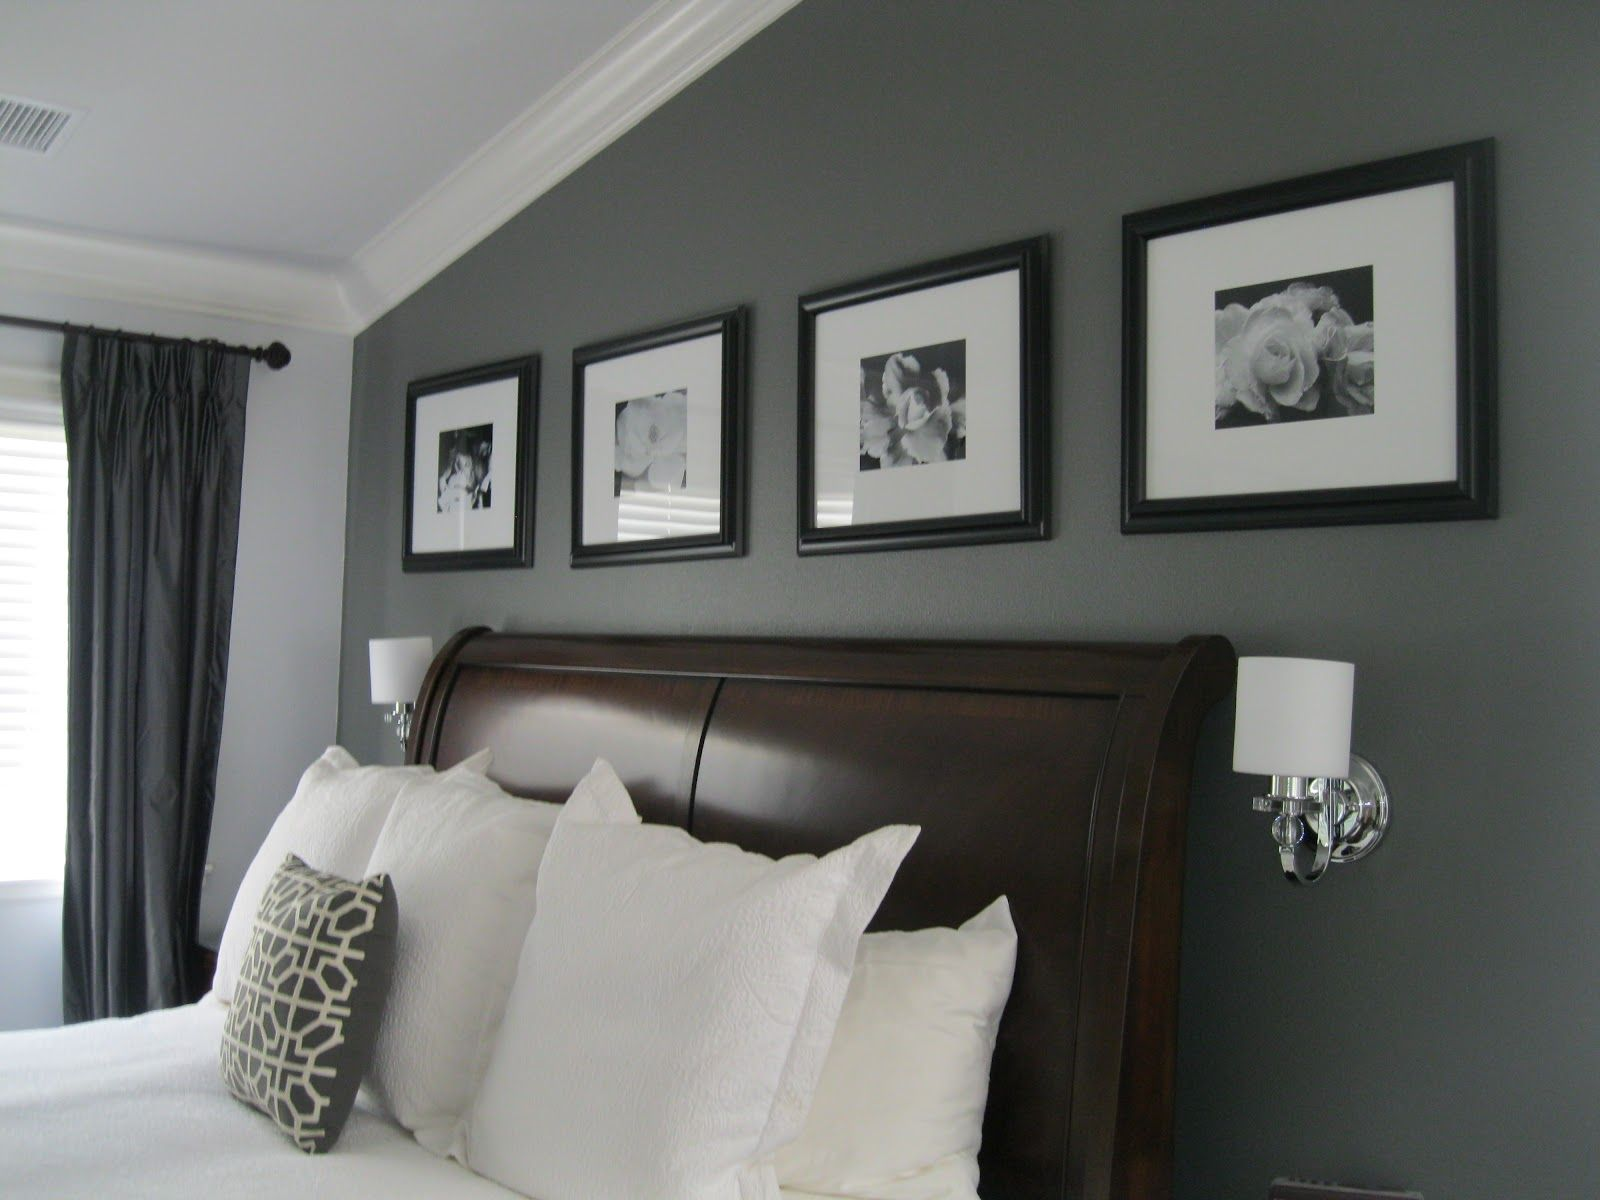 Bedroom wall decorating ideas picture frames - 25 Best Ideas About Grey Picture Frames On Pinterest Hallway Ideas Love Picture Frames And Photo Wall Layout